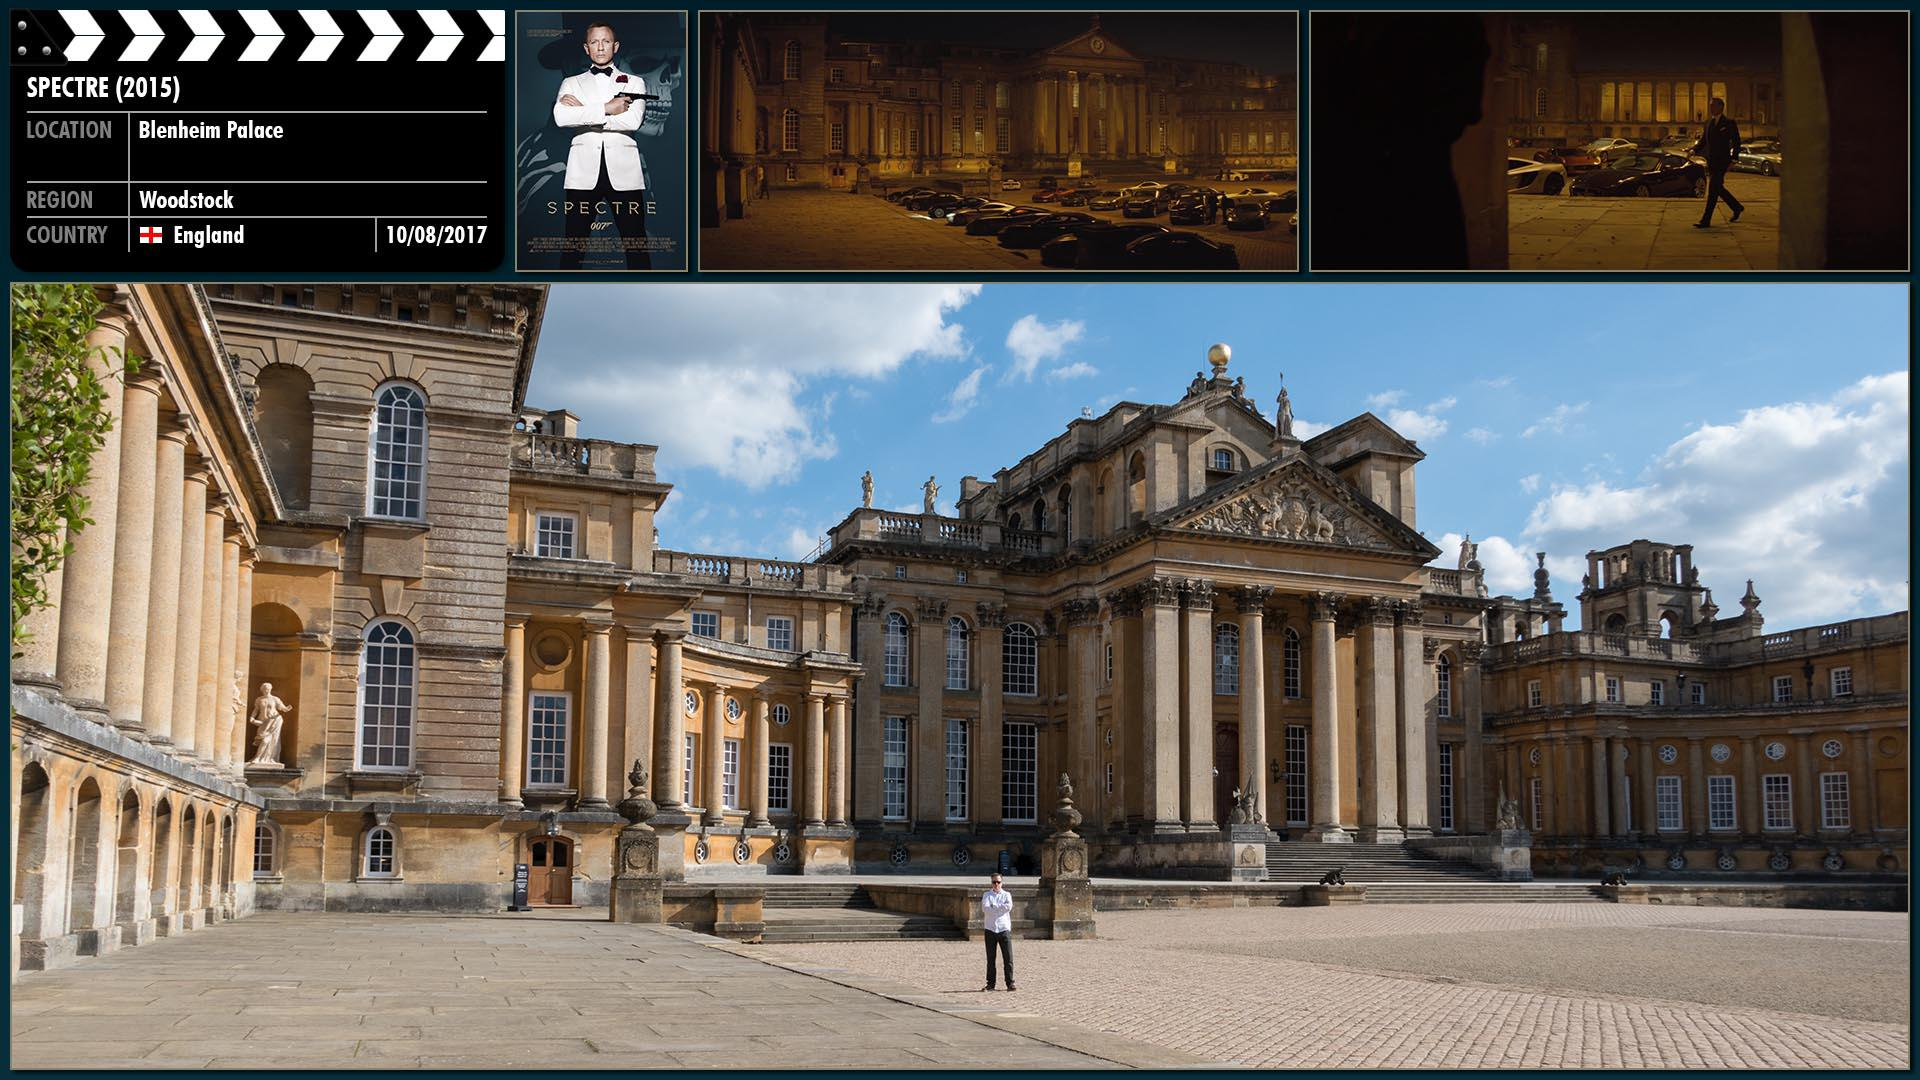 Filming location photo for Spectre (2015) 1 of 4